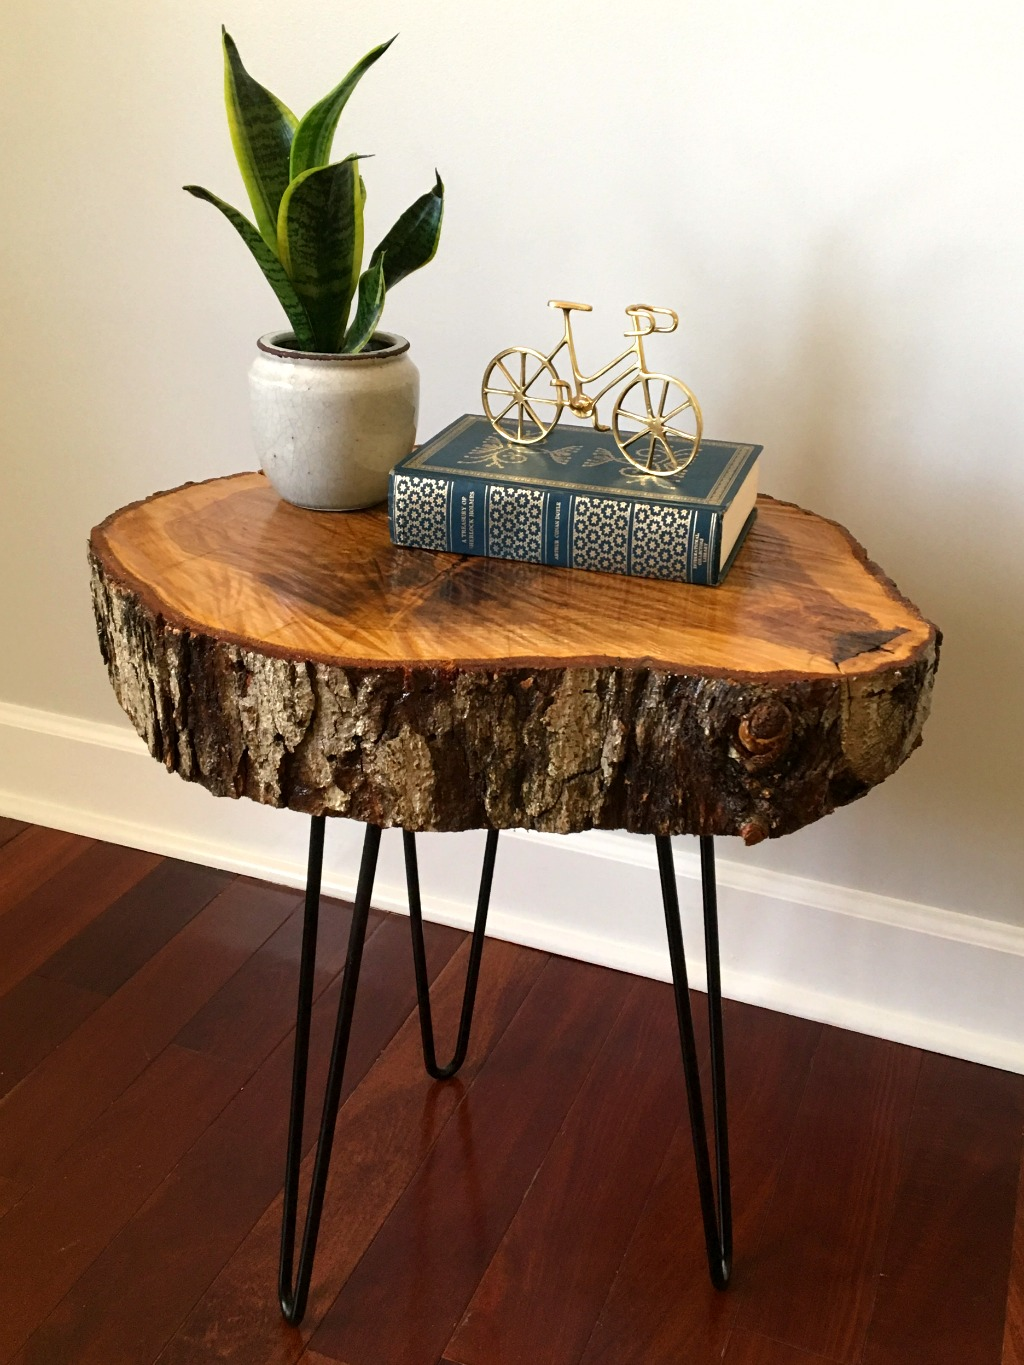 How to make a DIY tree slice table in just a few easy steps